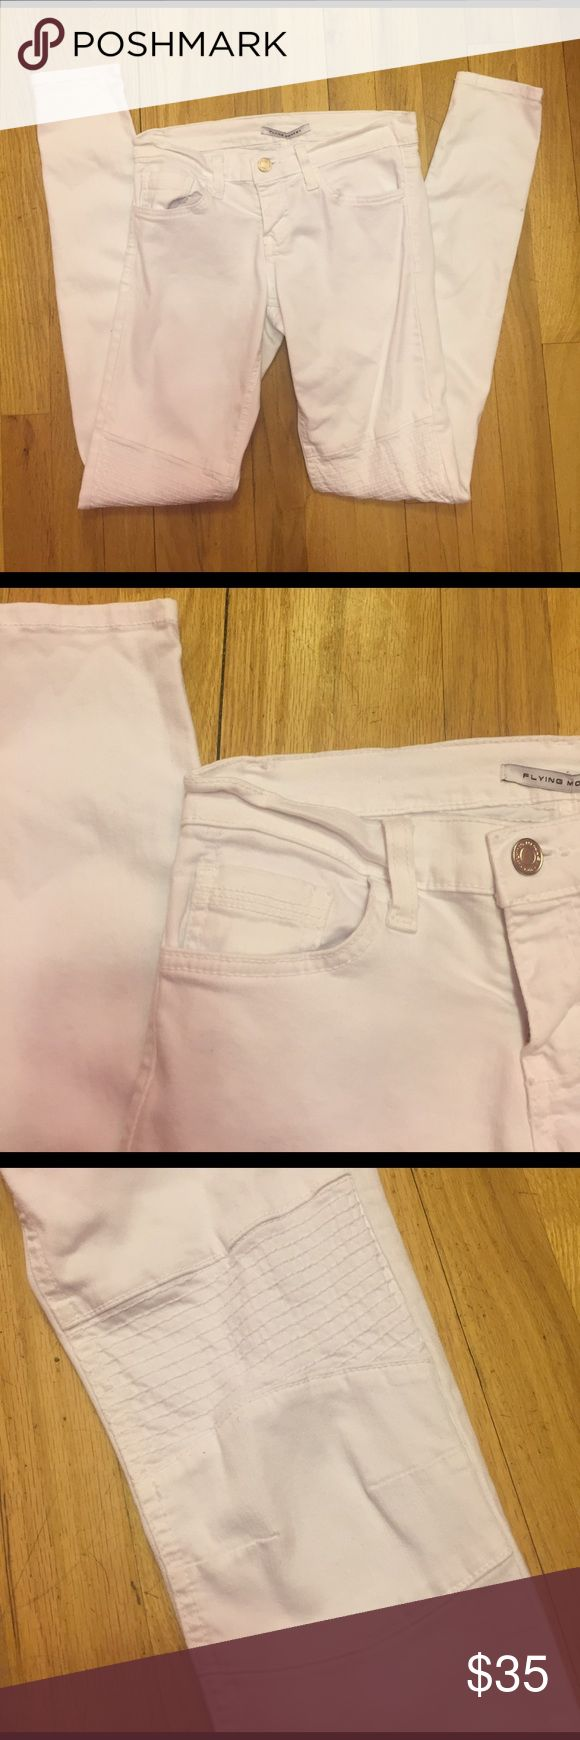 Flying monkey white skinny jeans Gently worn flying monkey skinny jeans, white. Stretchy and comfortable. Size 25. Small spots on bottom of left side of leg. Pictured in last picture. Consigned to my boutique, no trades.                  Waist laying flat: 13 inches                                      Inseam: 30.5 inches Flying Monkey Jeans Skinny